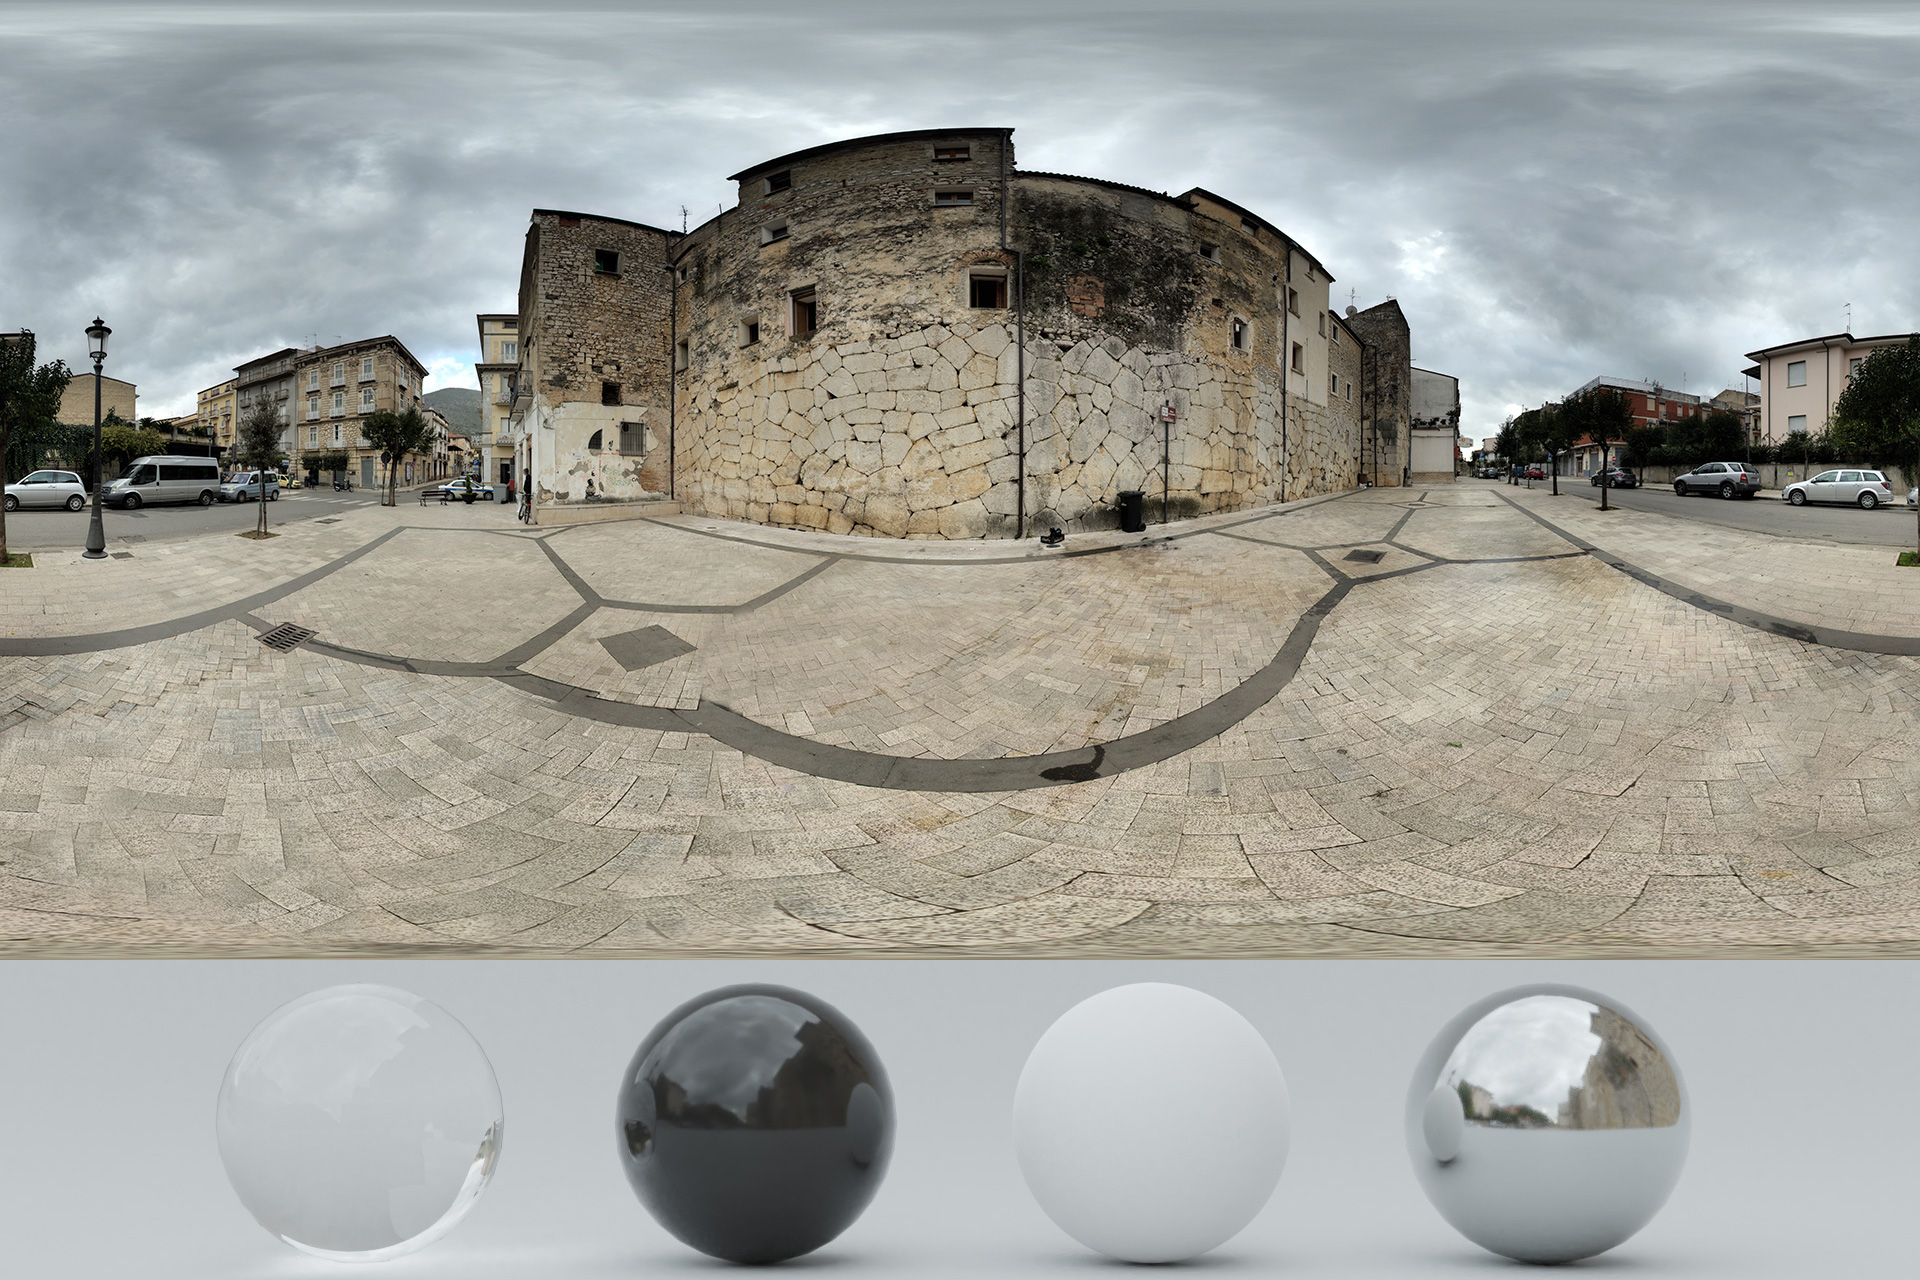 HDRi – Cloudy and Old Buildings